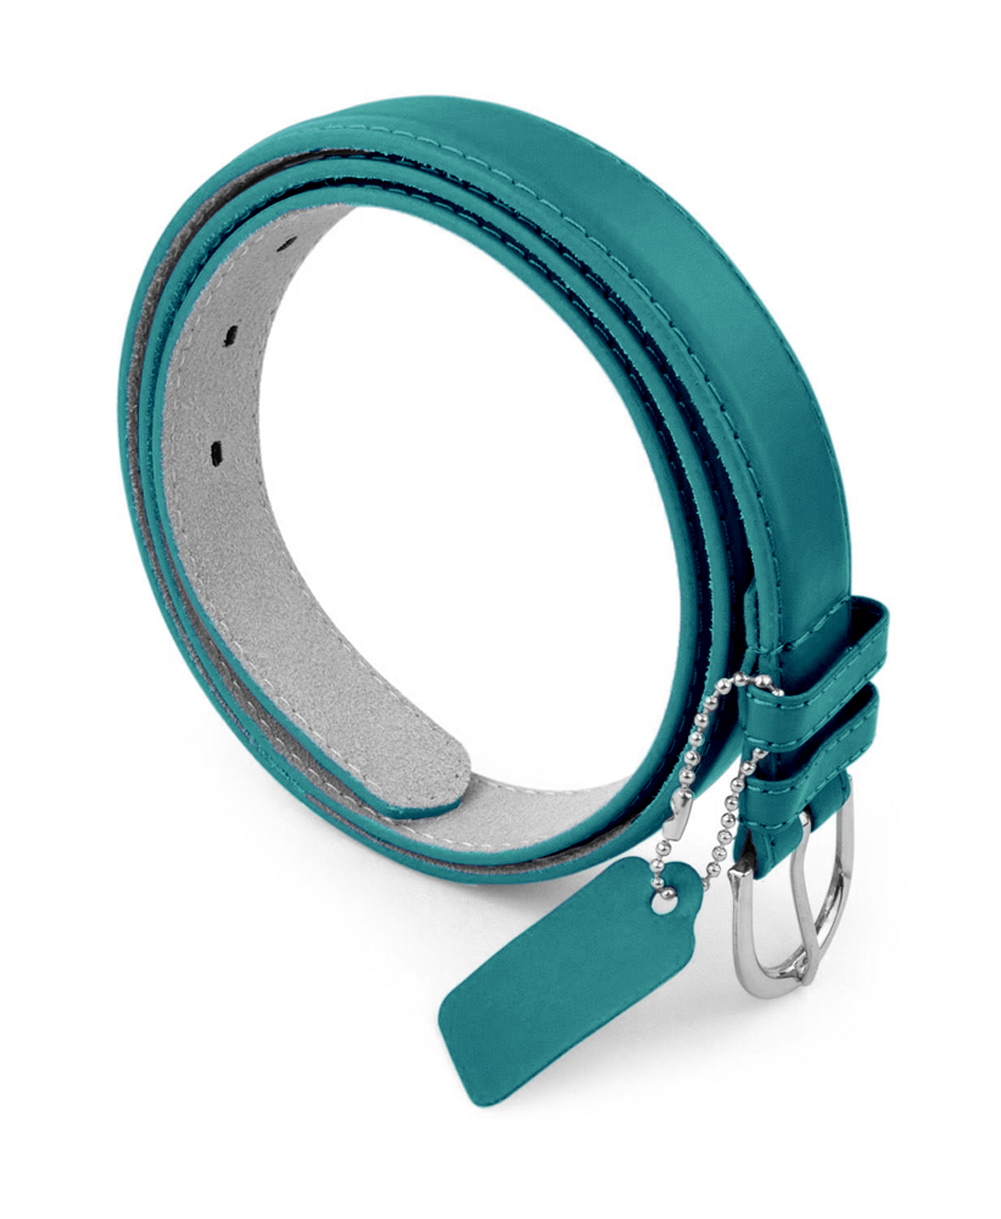 Womens Chic Dress Belt Bonded Leather Polished Buckle - Light KellyGreen Large